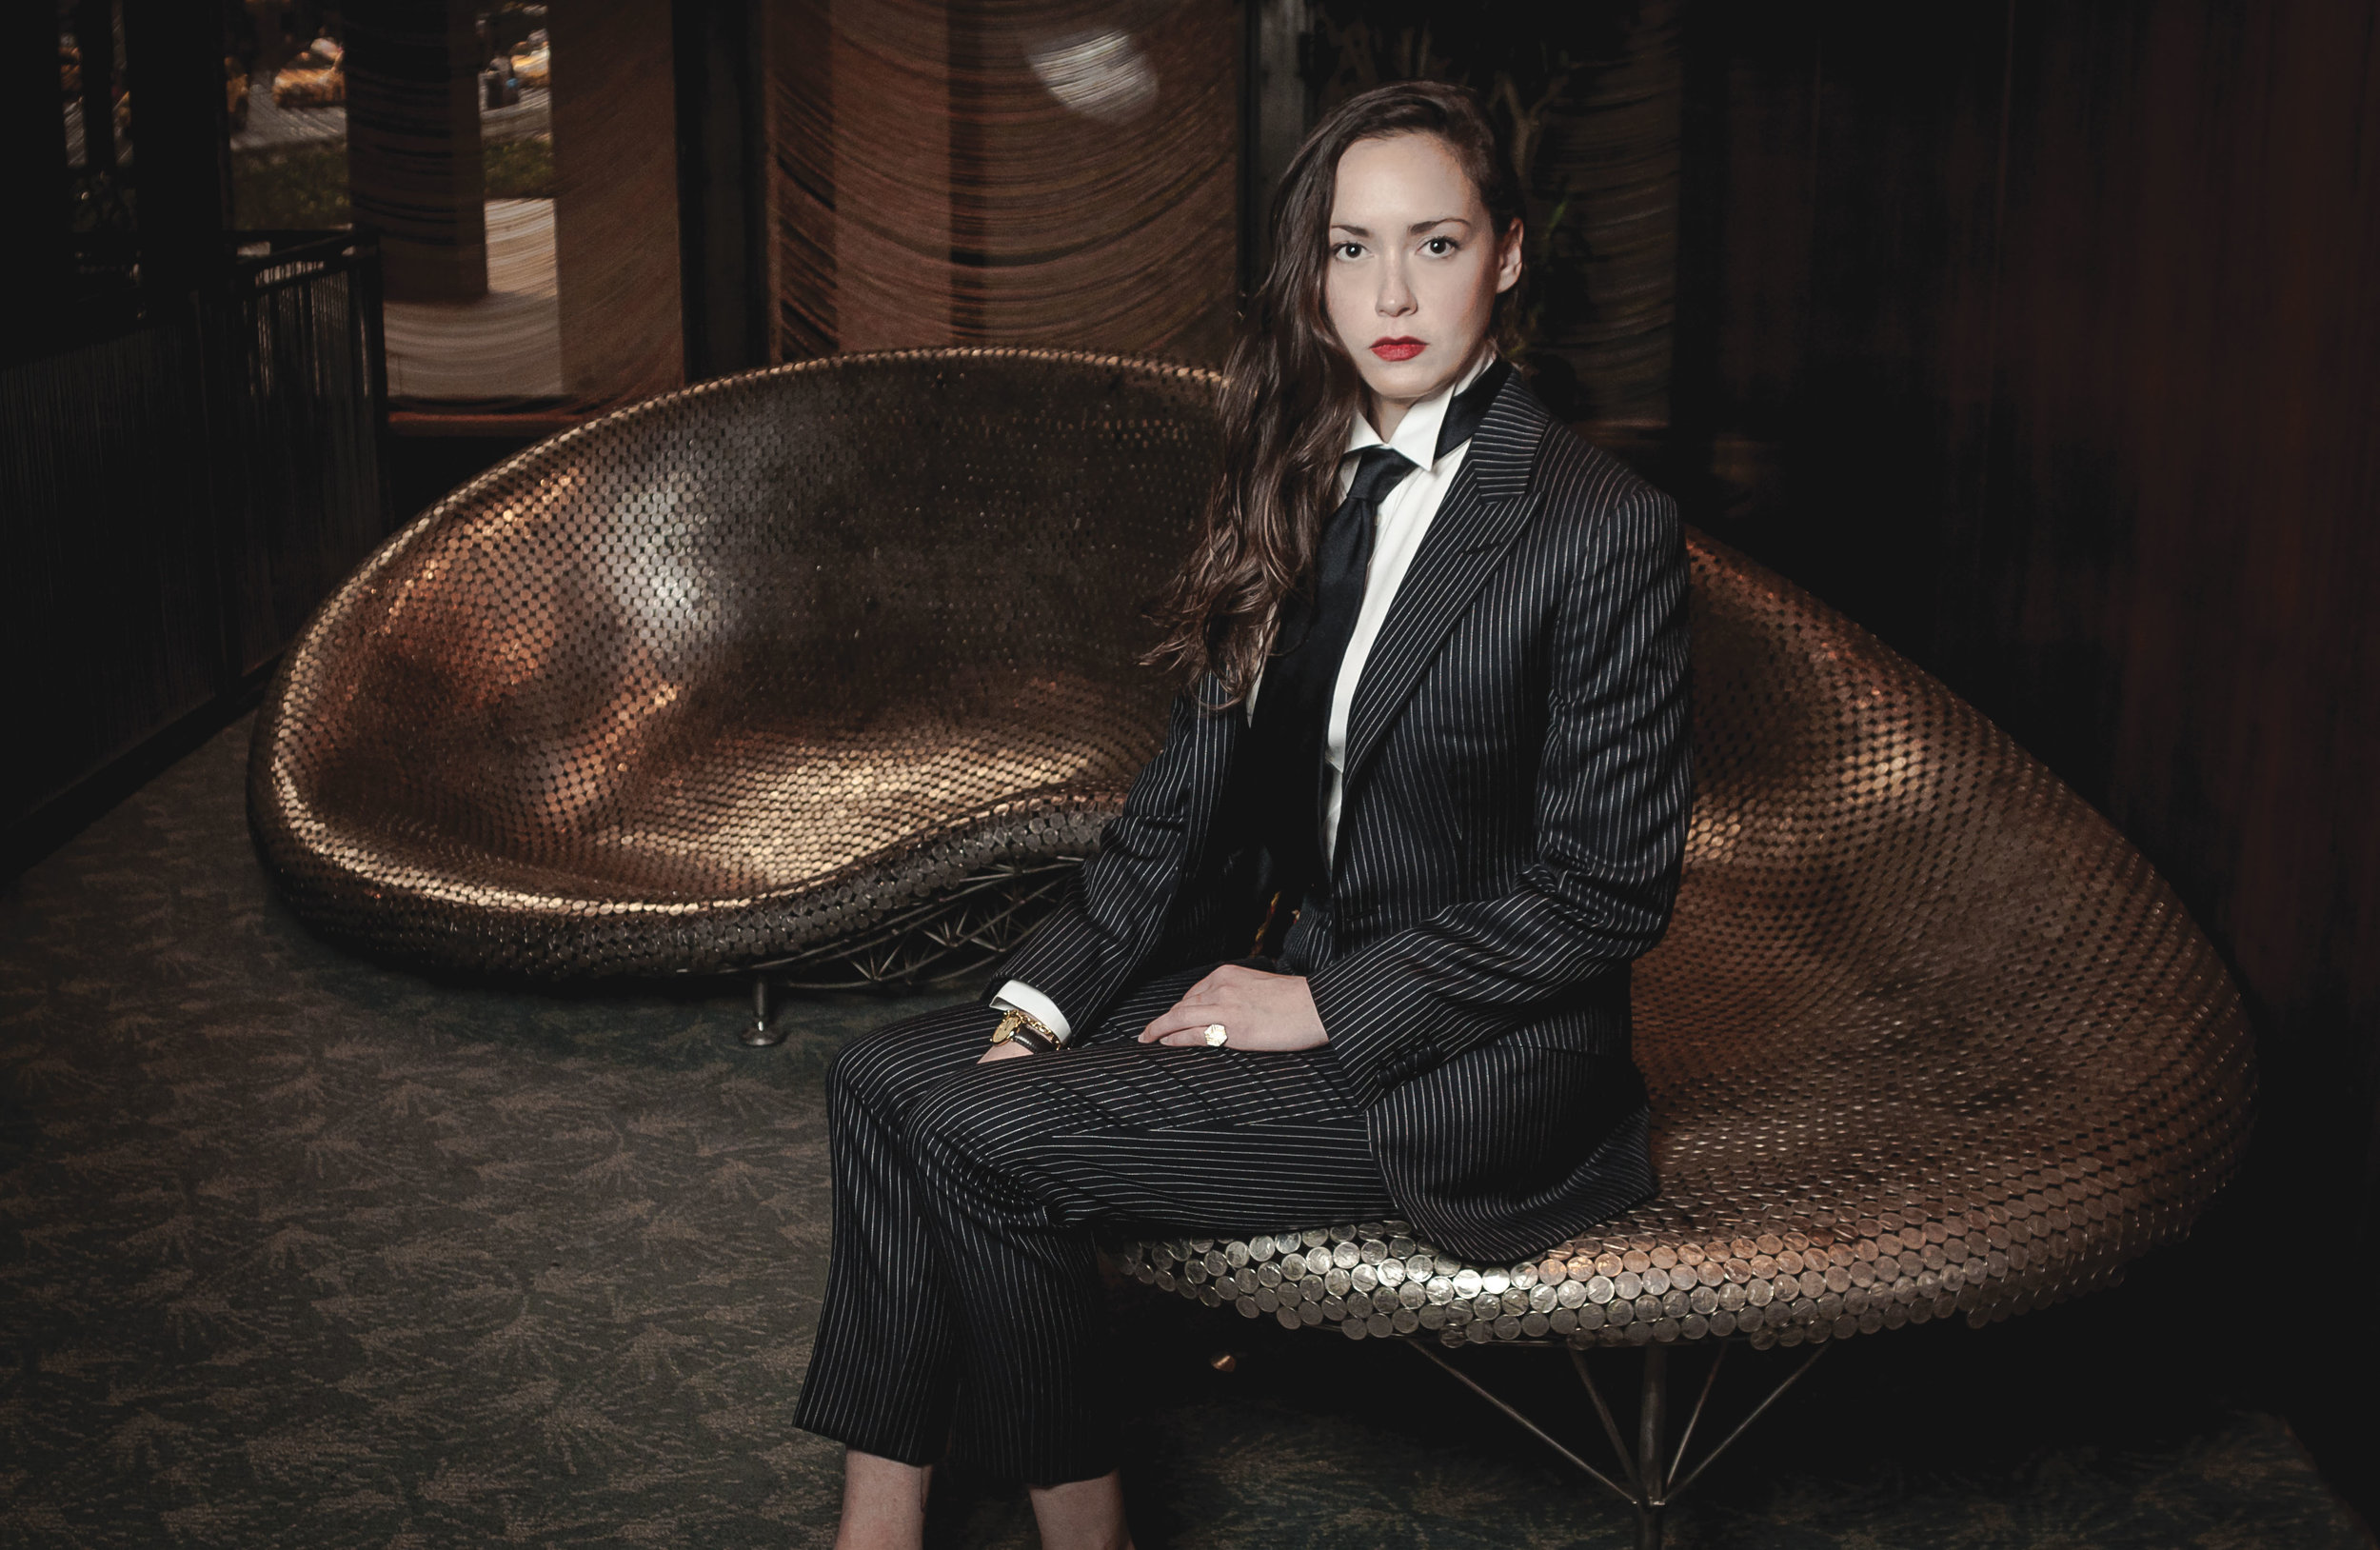 The Hepburn business/dinner suit from the Fusser Femme collection of Alan Flusser.